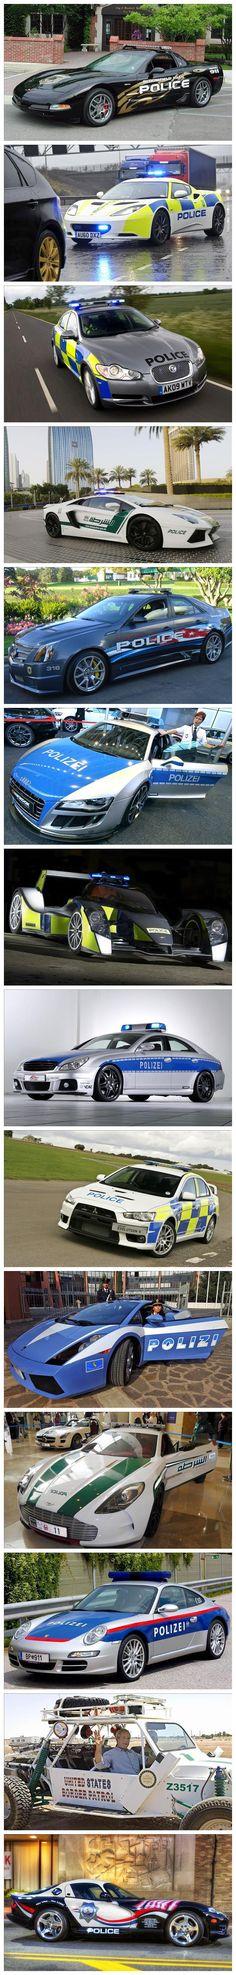 The World's Most Exotic Police Cars